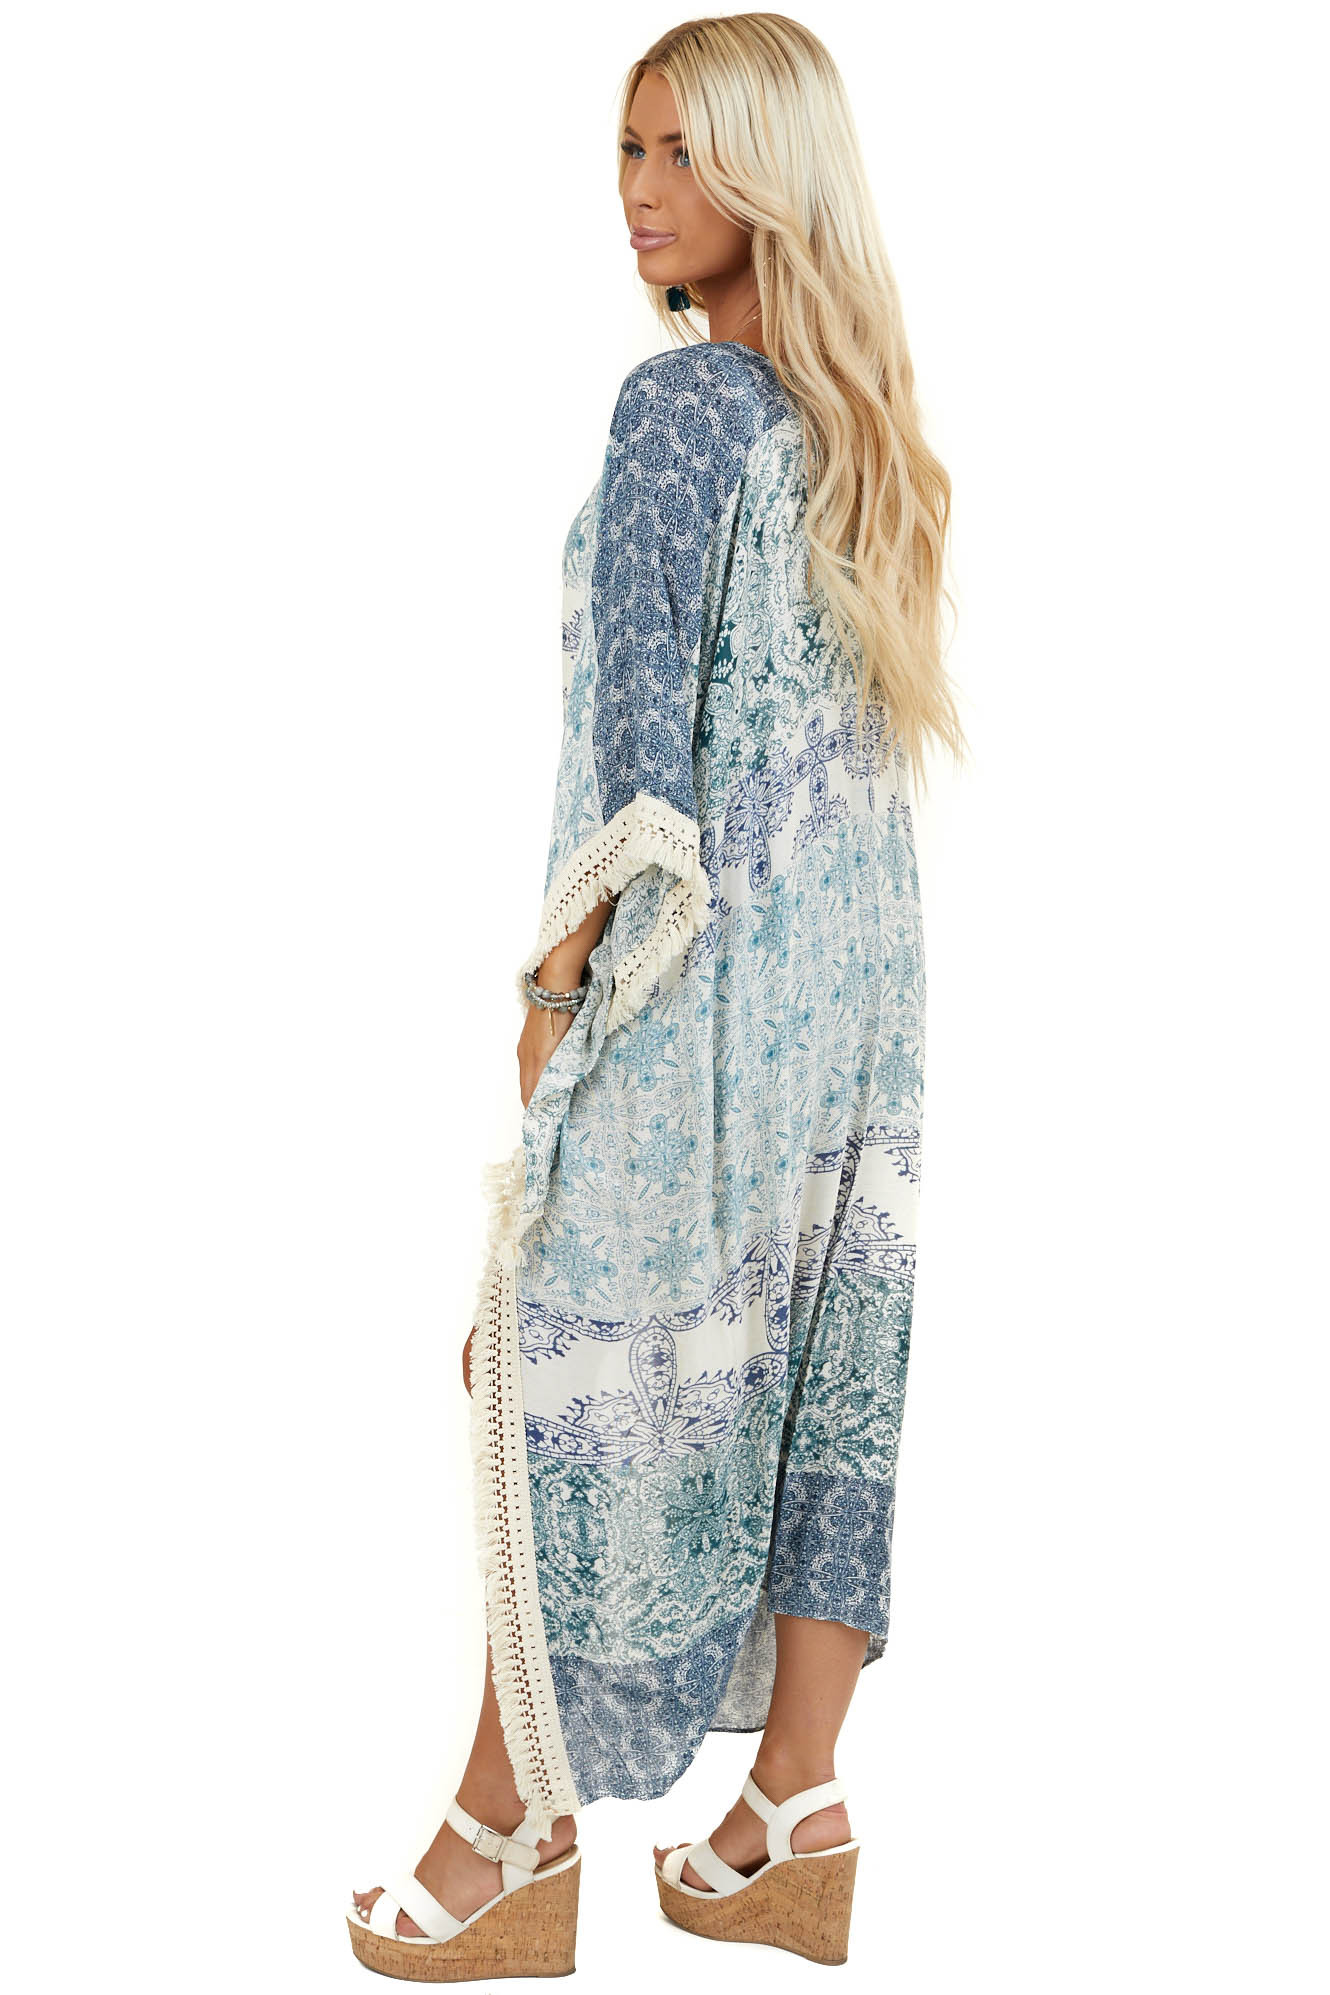 Navy and Teal Printed Kimono with Cream Tassel Details